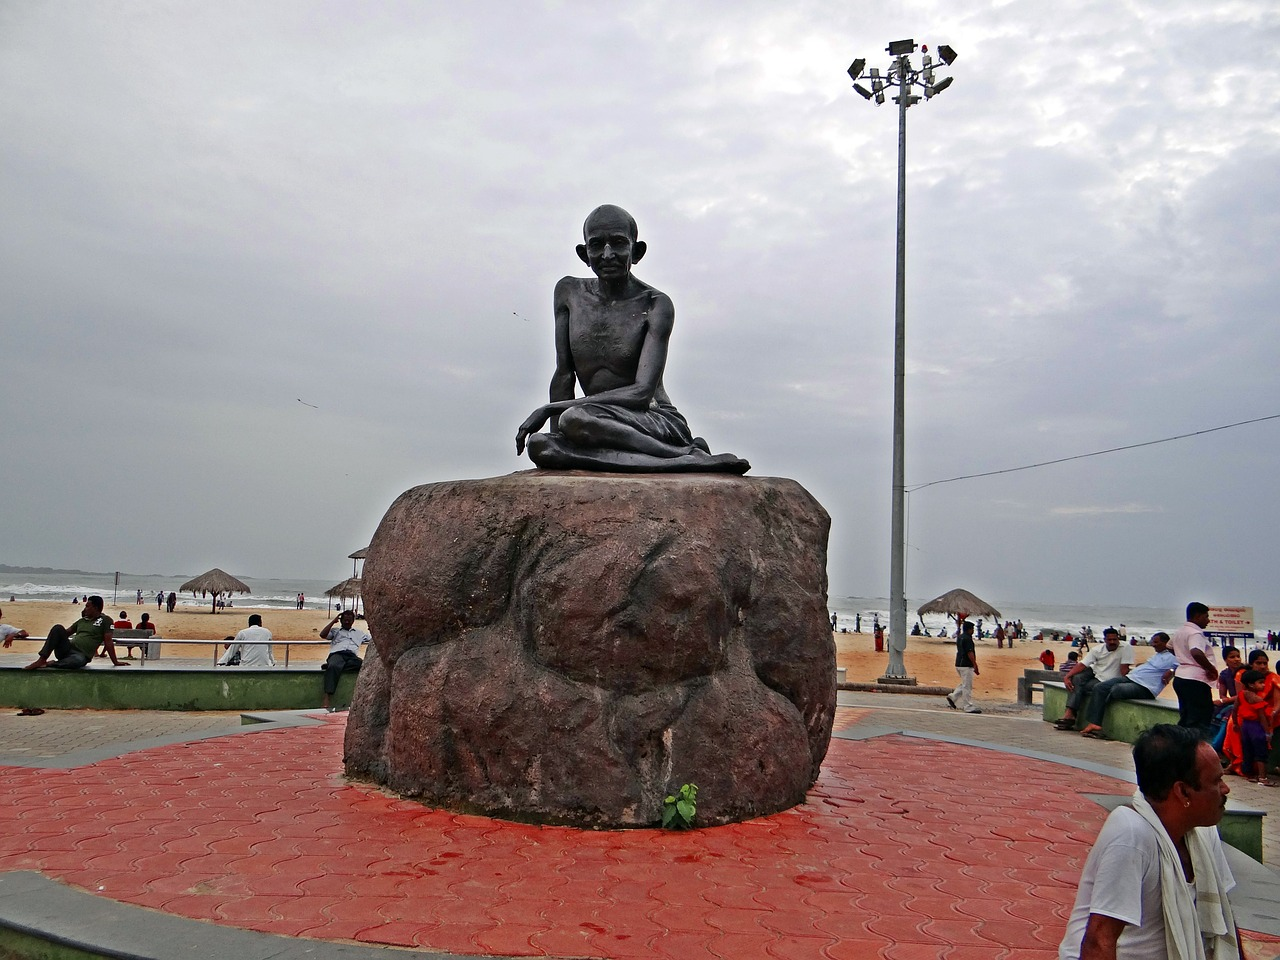 mahatma,gandhi,statue,sculpture,india,landmark,monument,history,historical,historic,nonviolence,udupi beach,bronze,carving,inspiration,hope,symbol,heritage,non-violence,inspirational,free pictures, free photos, free images, royalty free, free illustrations, public domain